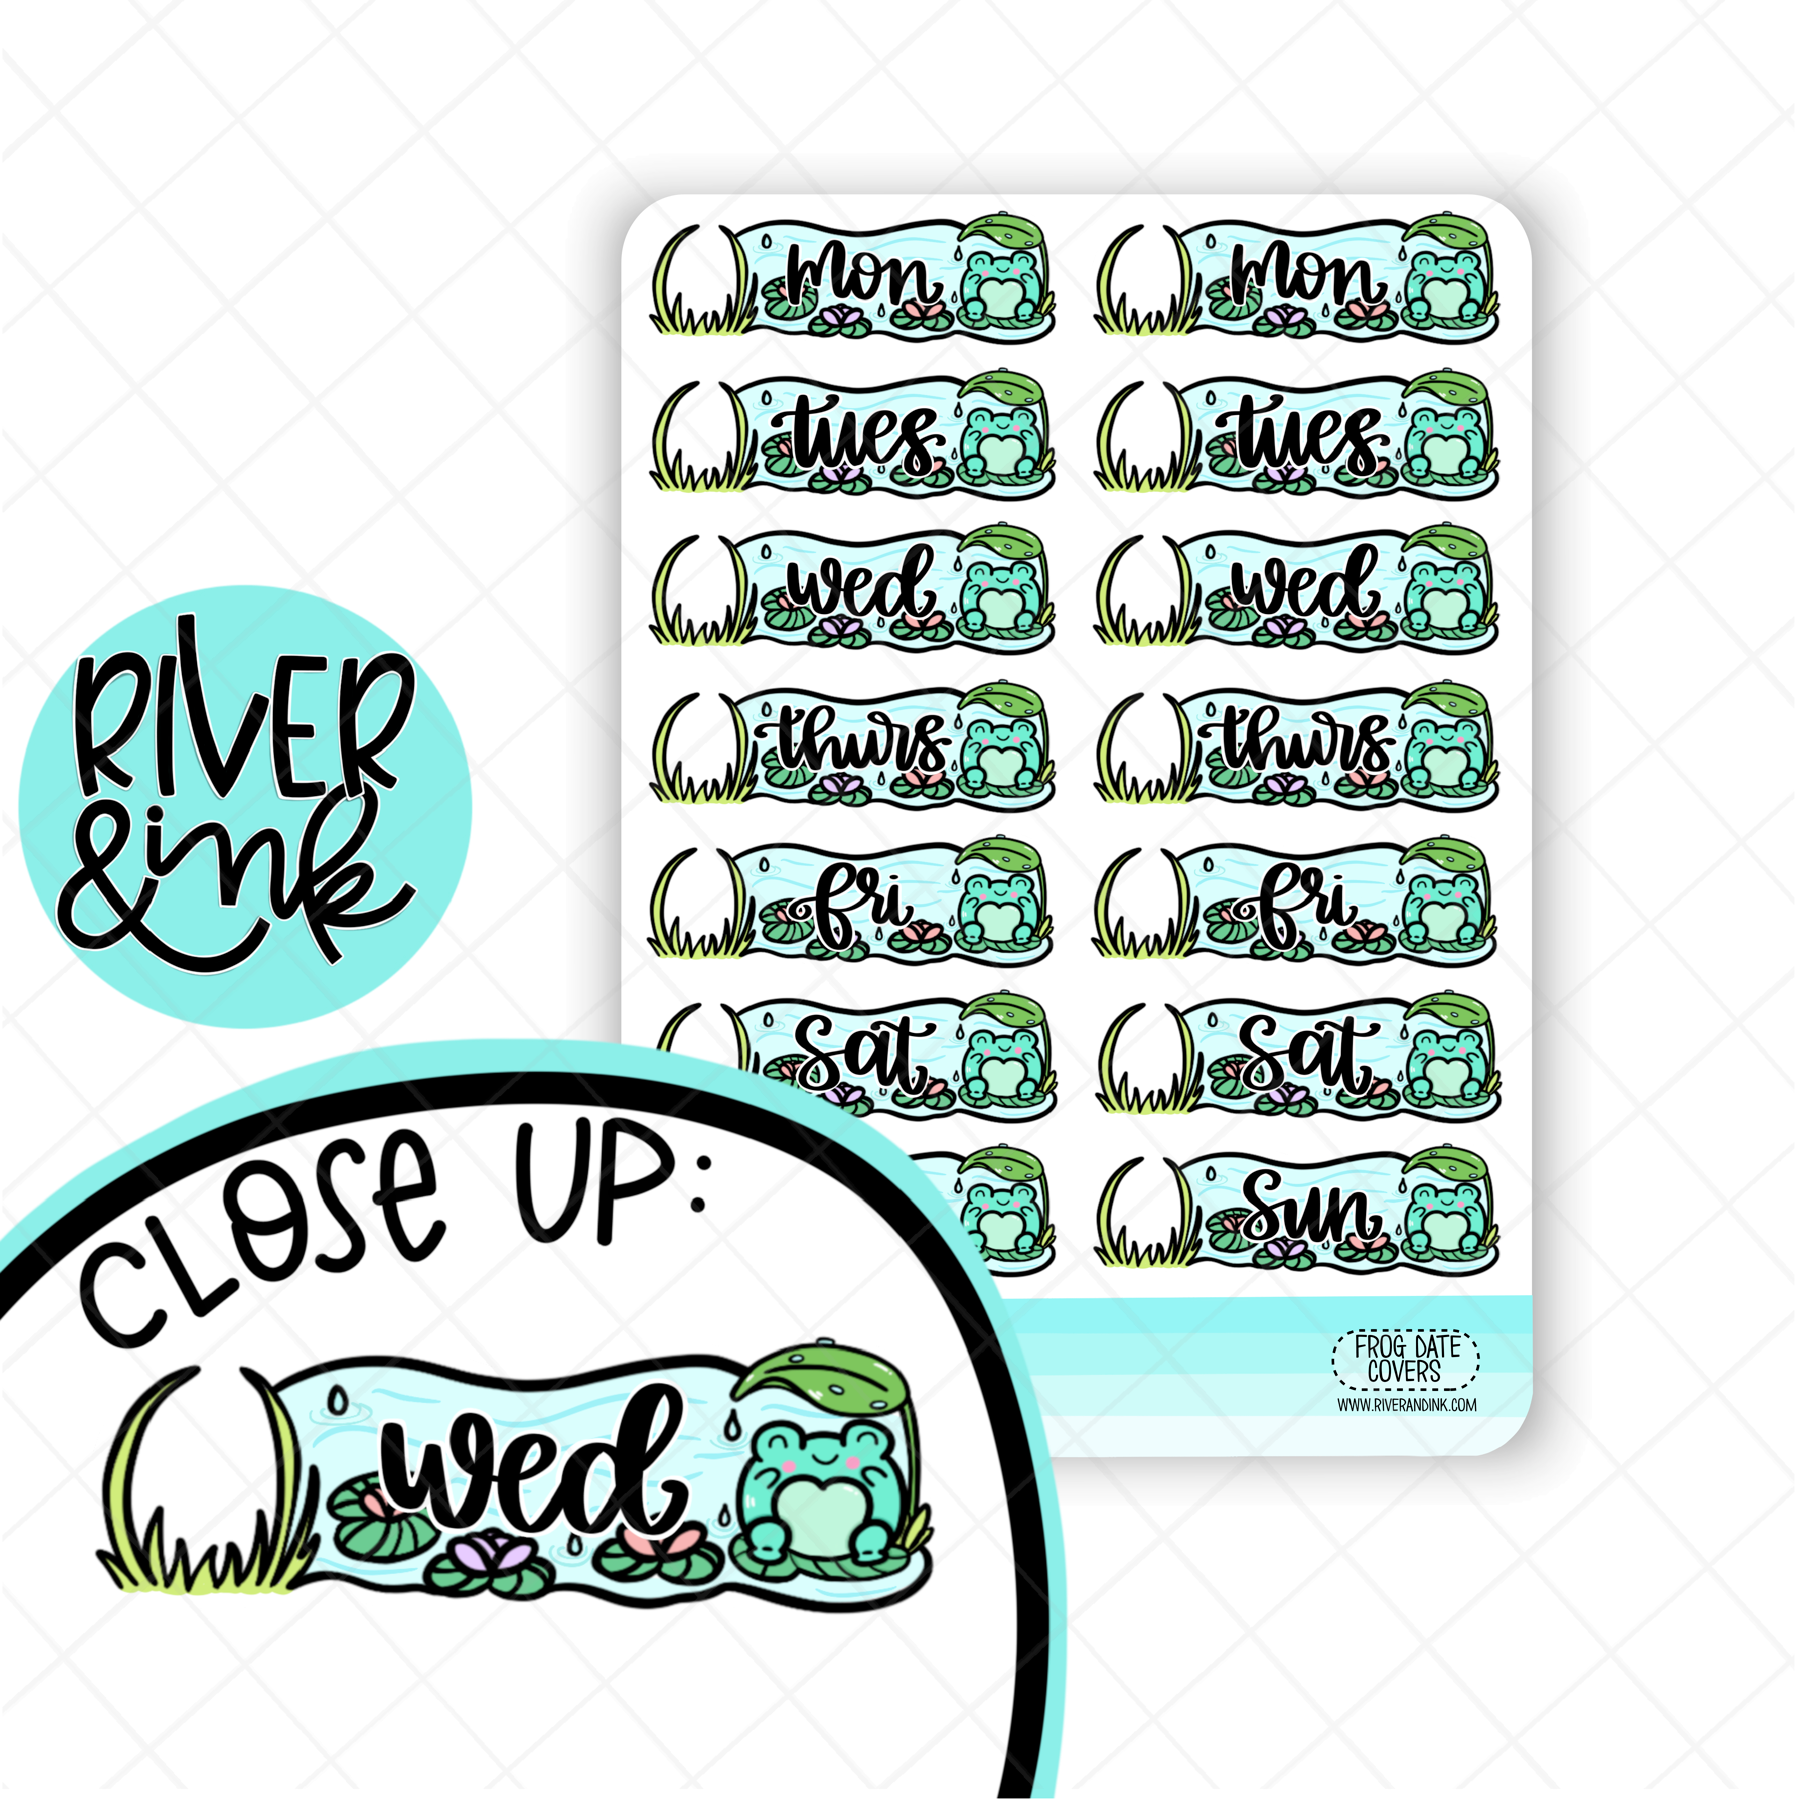 Frog Pond Date Covers | Hand Drawn Planner Stickers